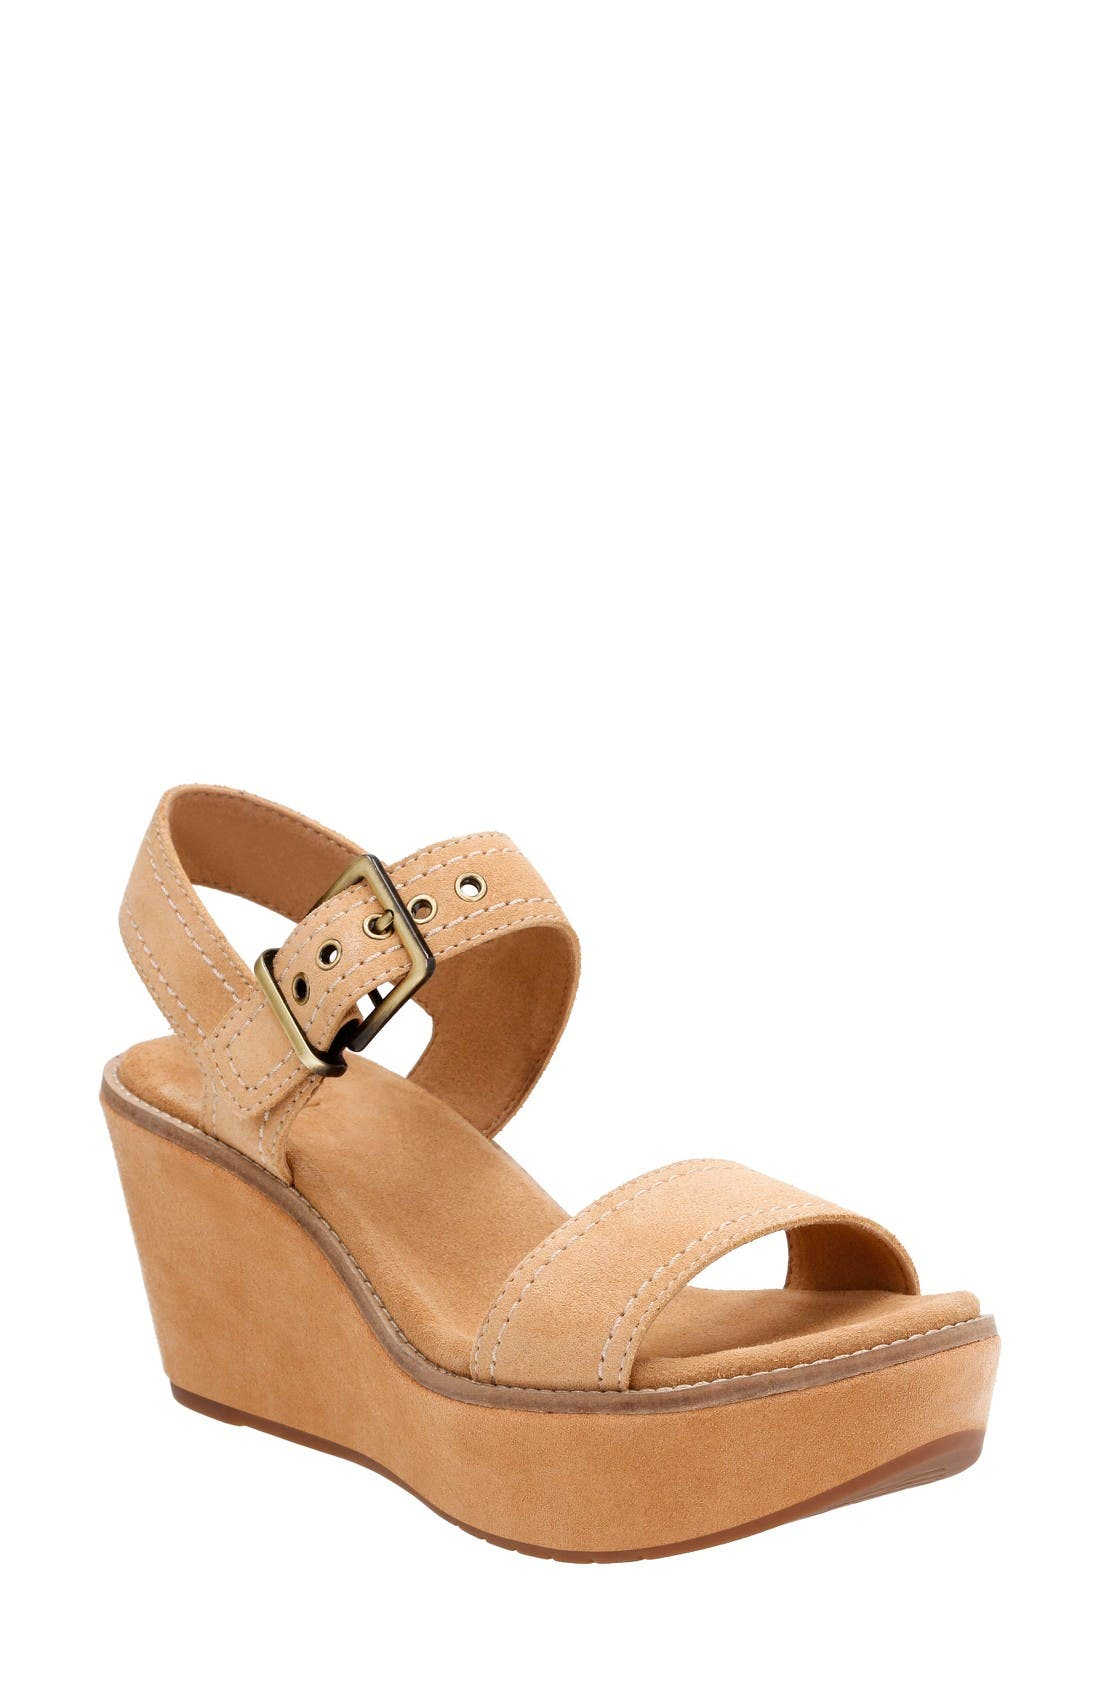 Main Image - Clarks® Aisley Orchid Wedge Sandal (Women)